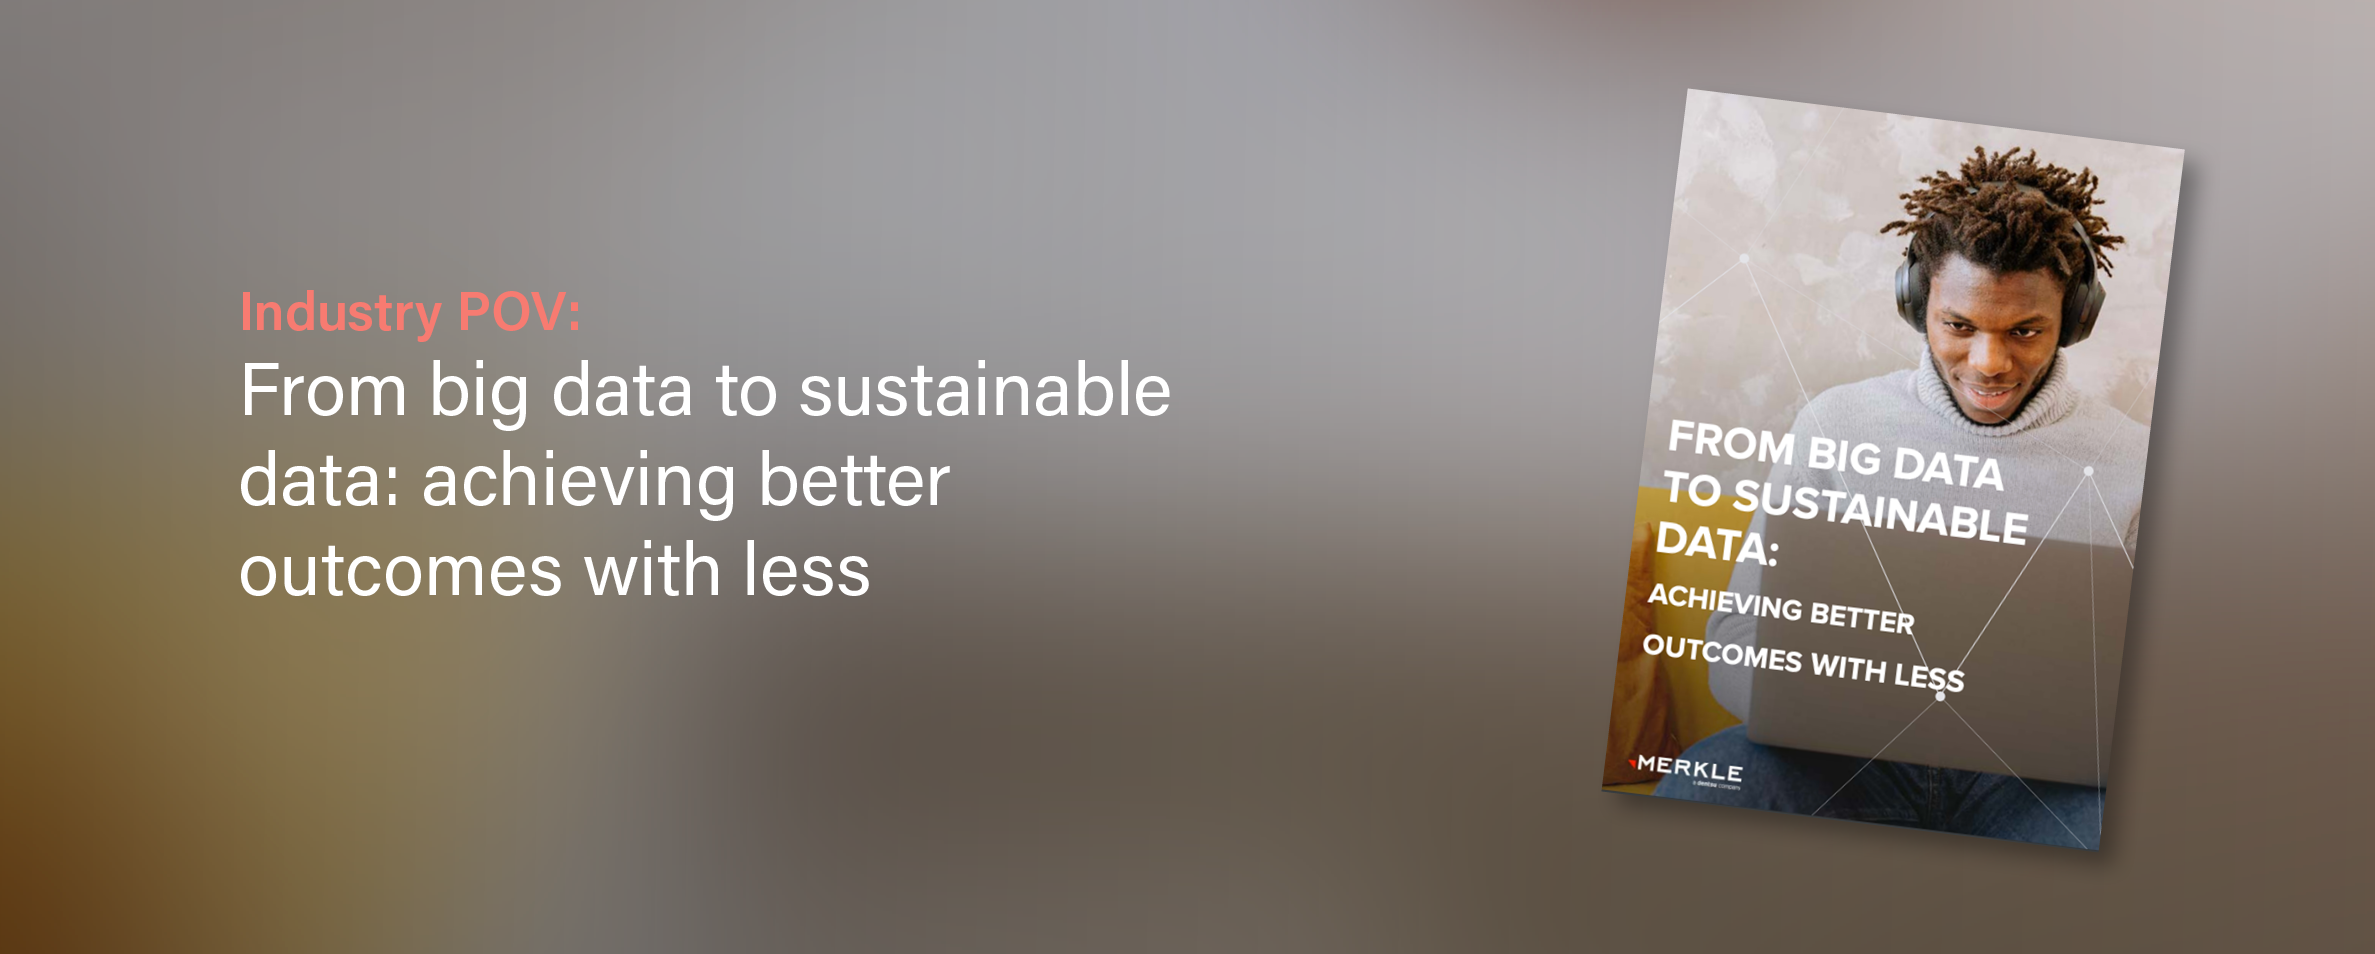 Merkle: From Big Data To Sustainable Data: Achieving Better Outcomes With Less